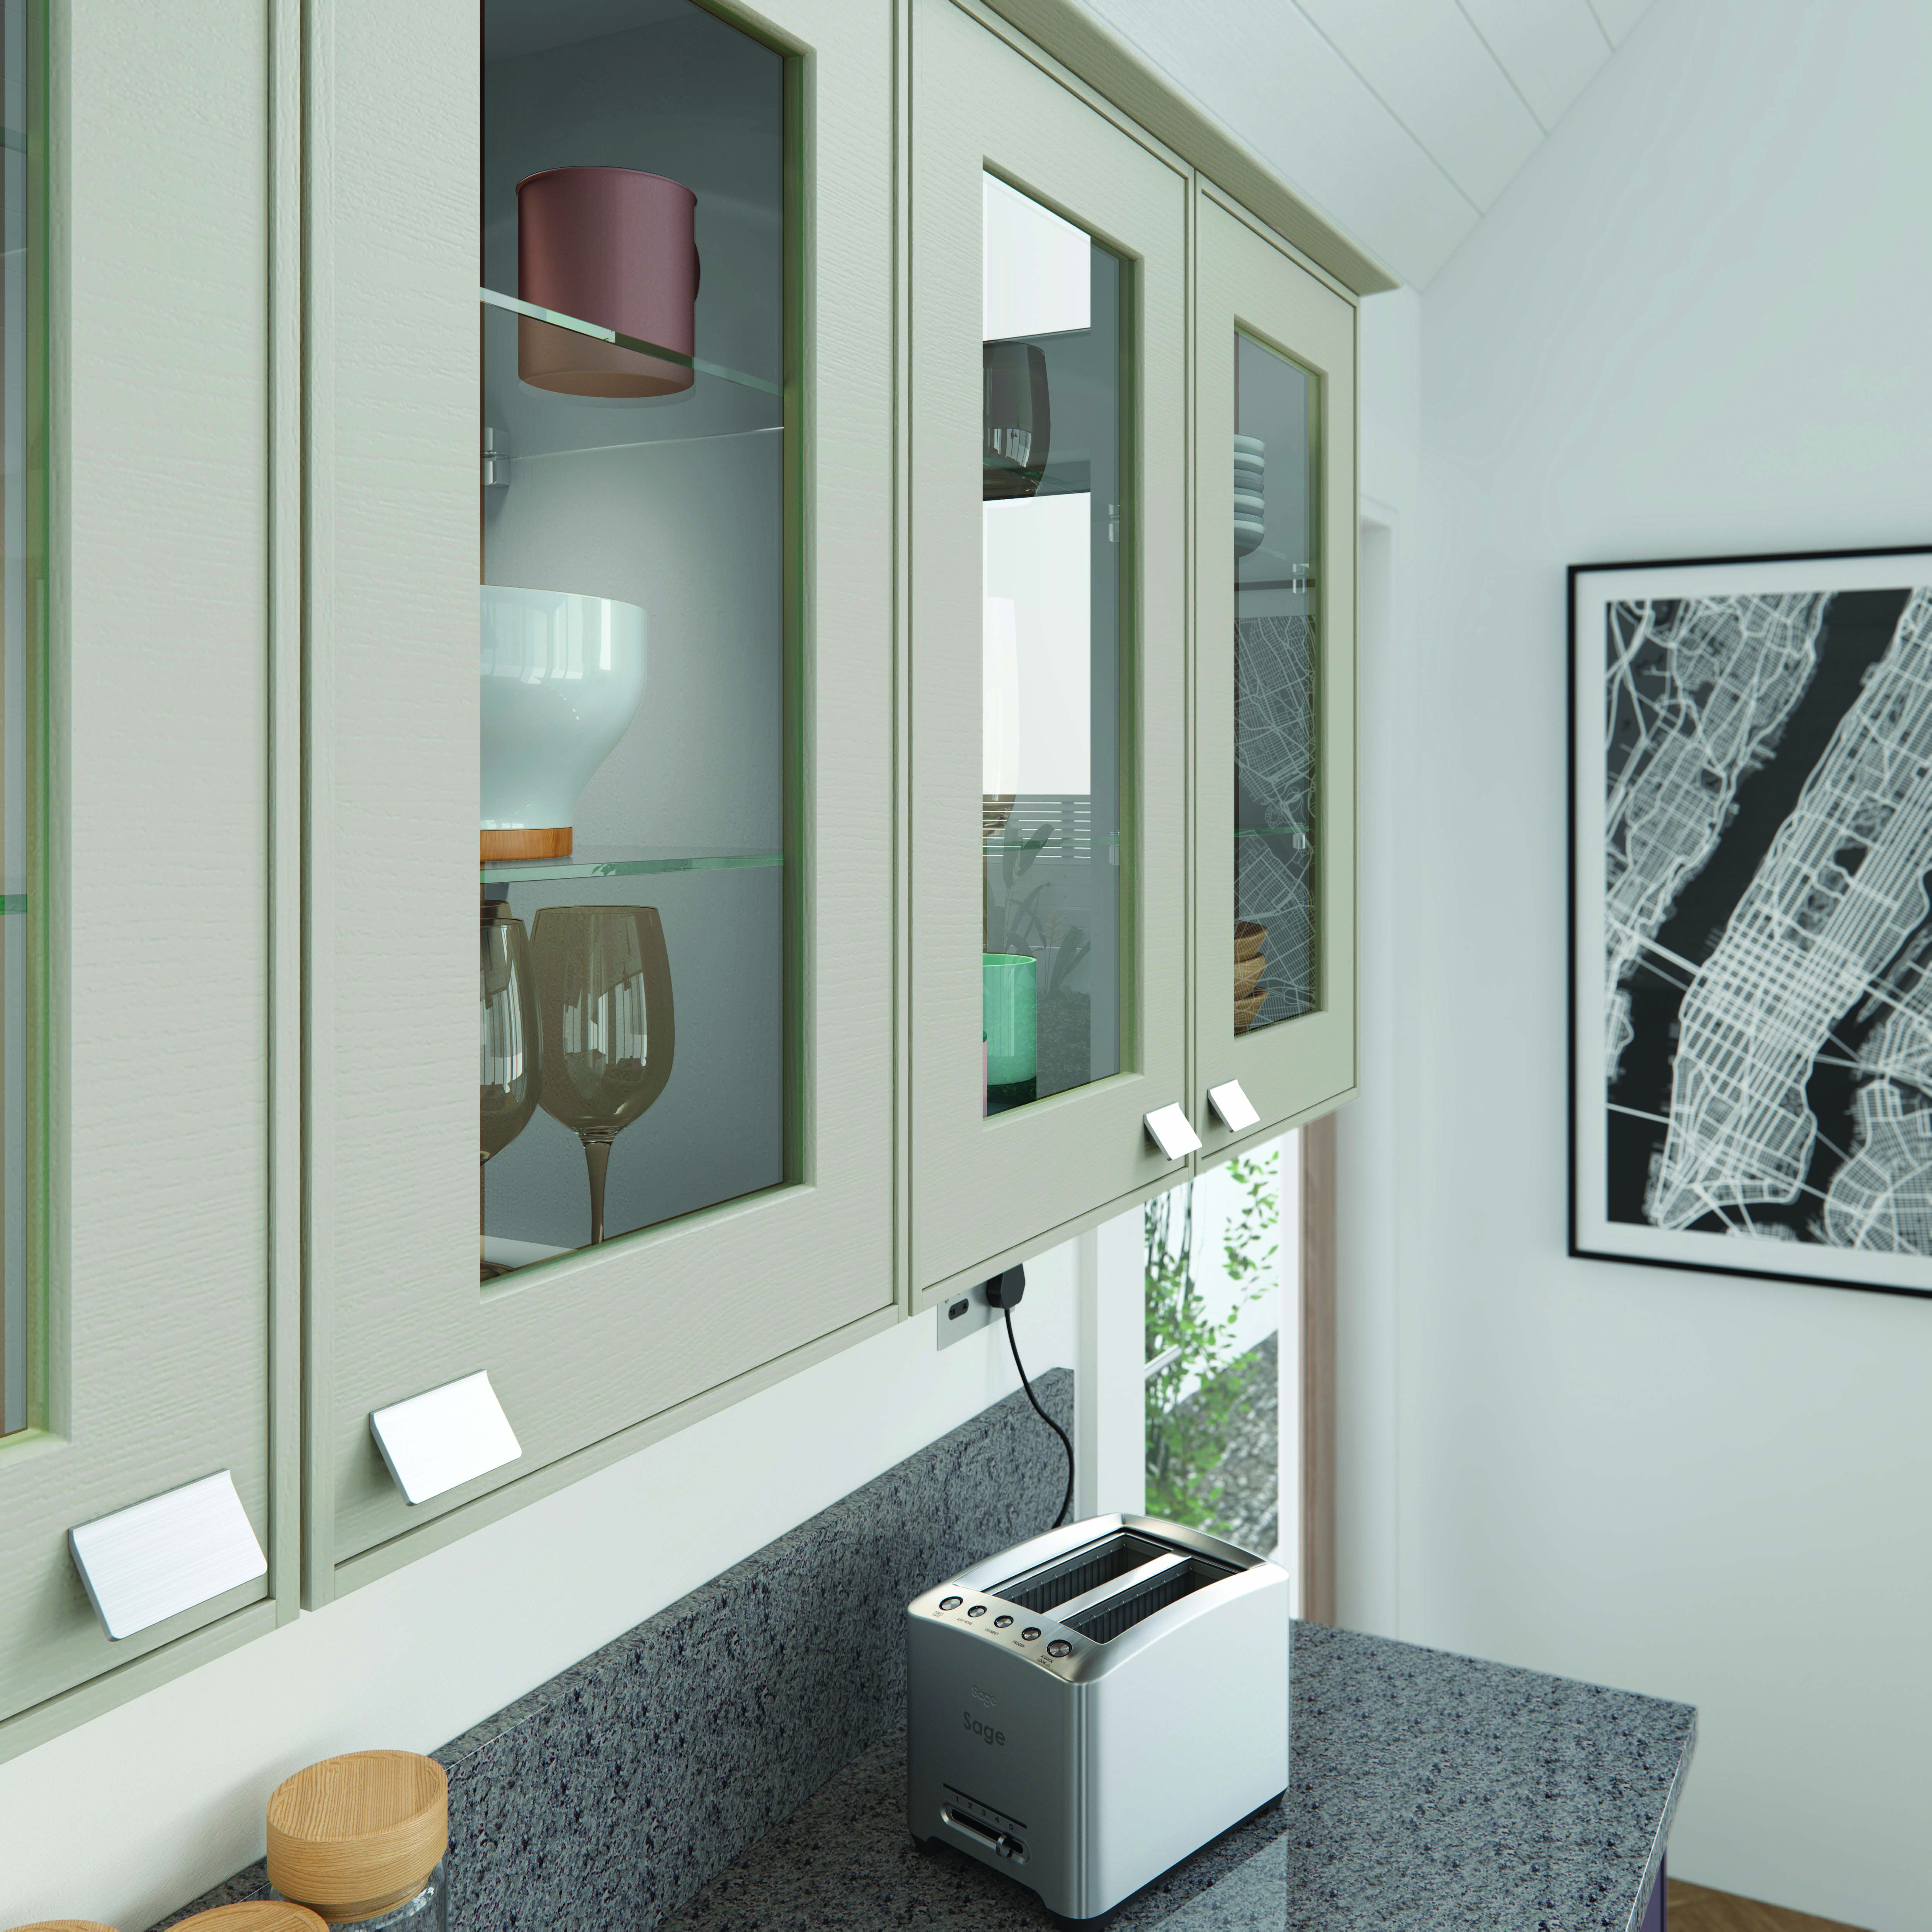 Ely Glazed Wall Units Cameo | Mereway Kitchens- Town & Country ...